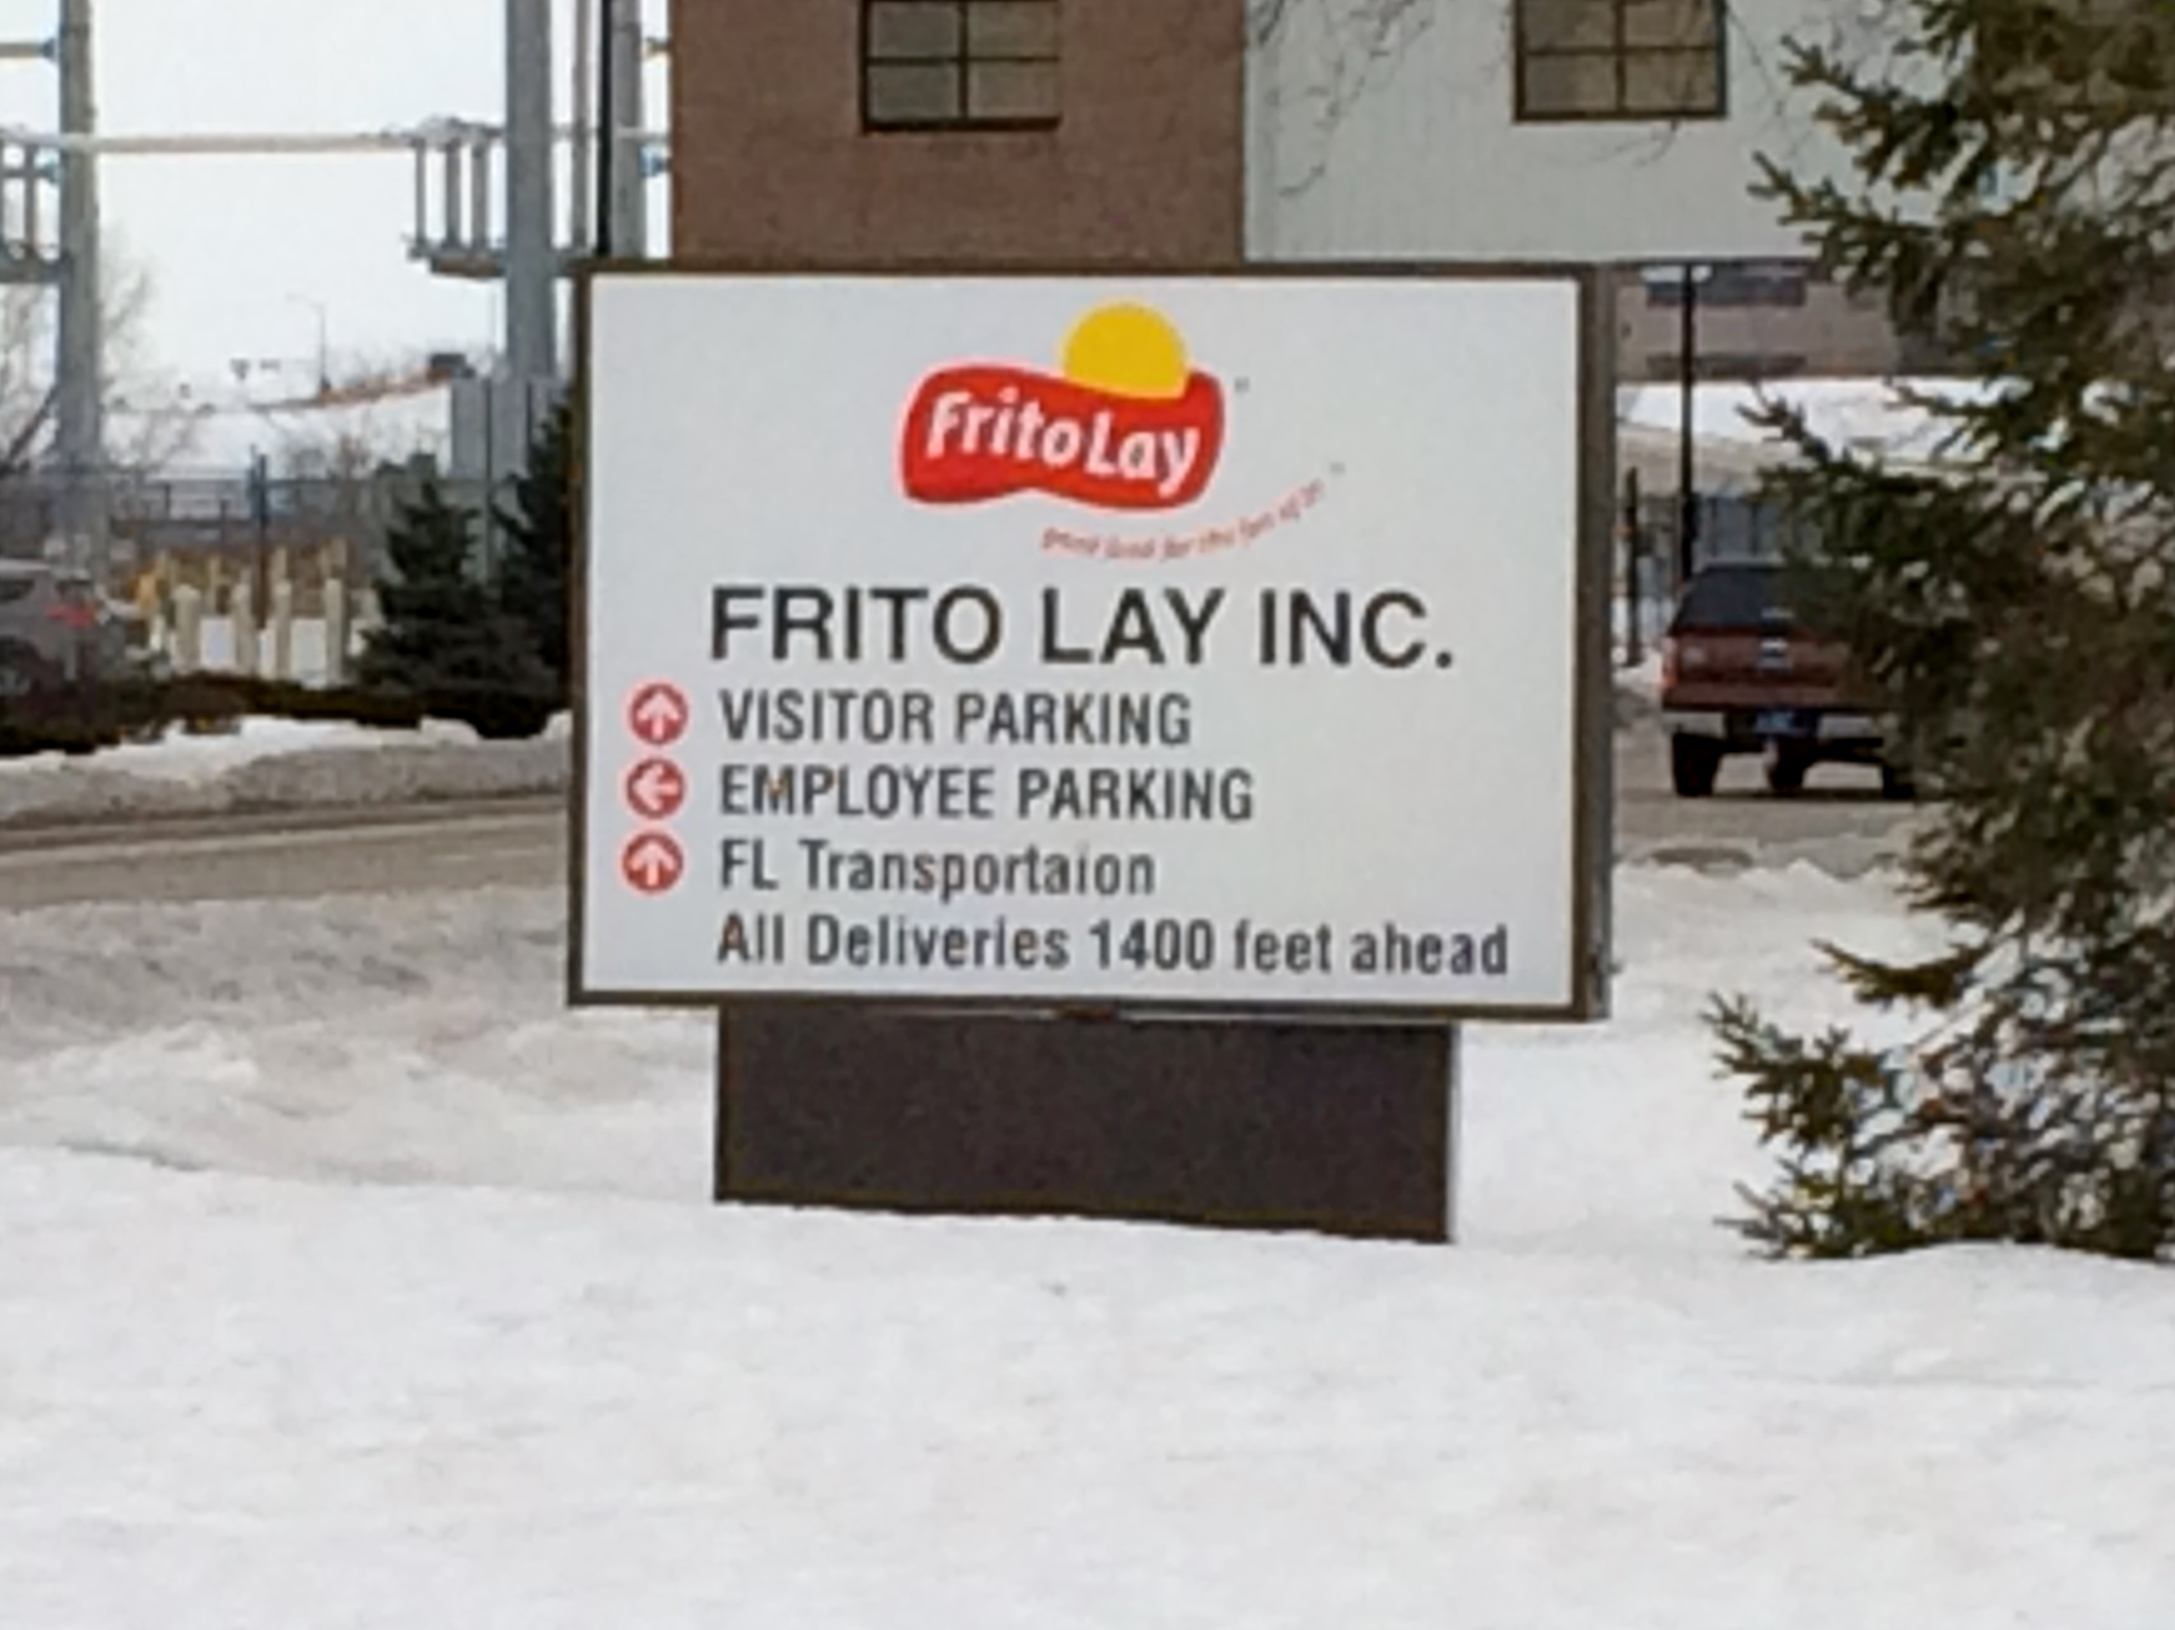 frito lay external environment The frito-lay executive is one of the marketing experts speaking at the conference and will address how the snack forecasting model has changed the company's.